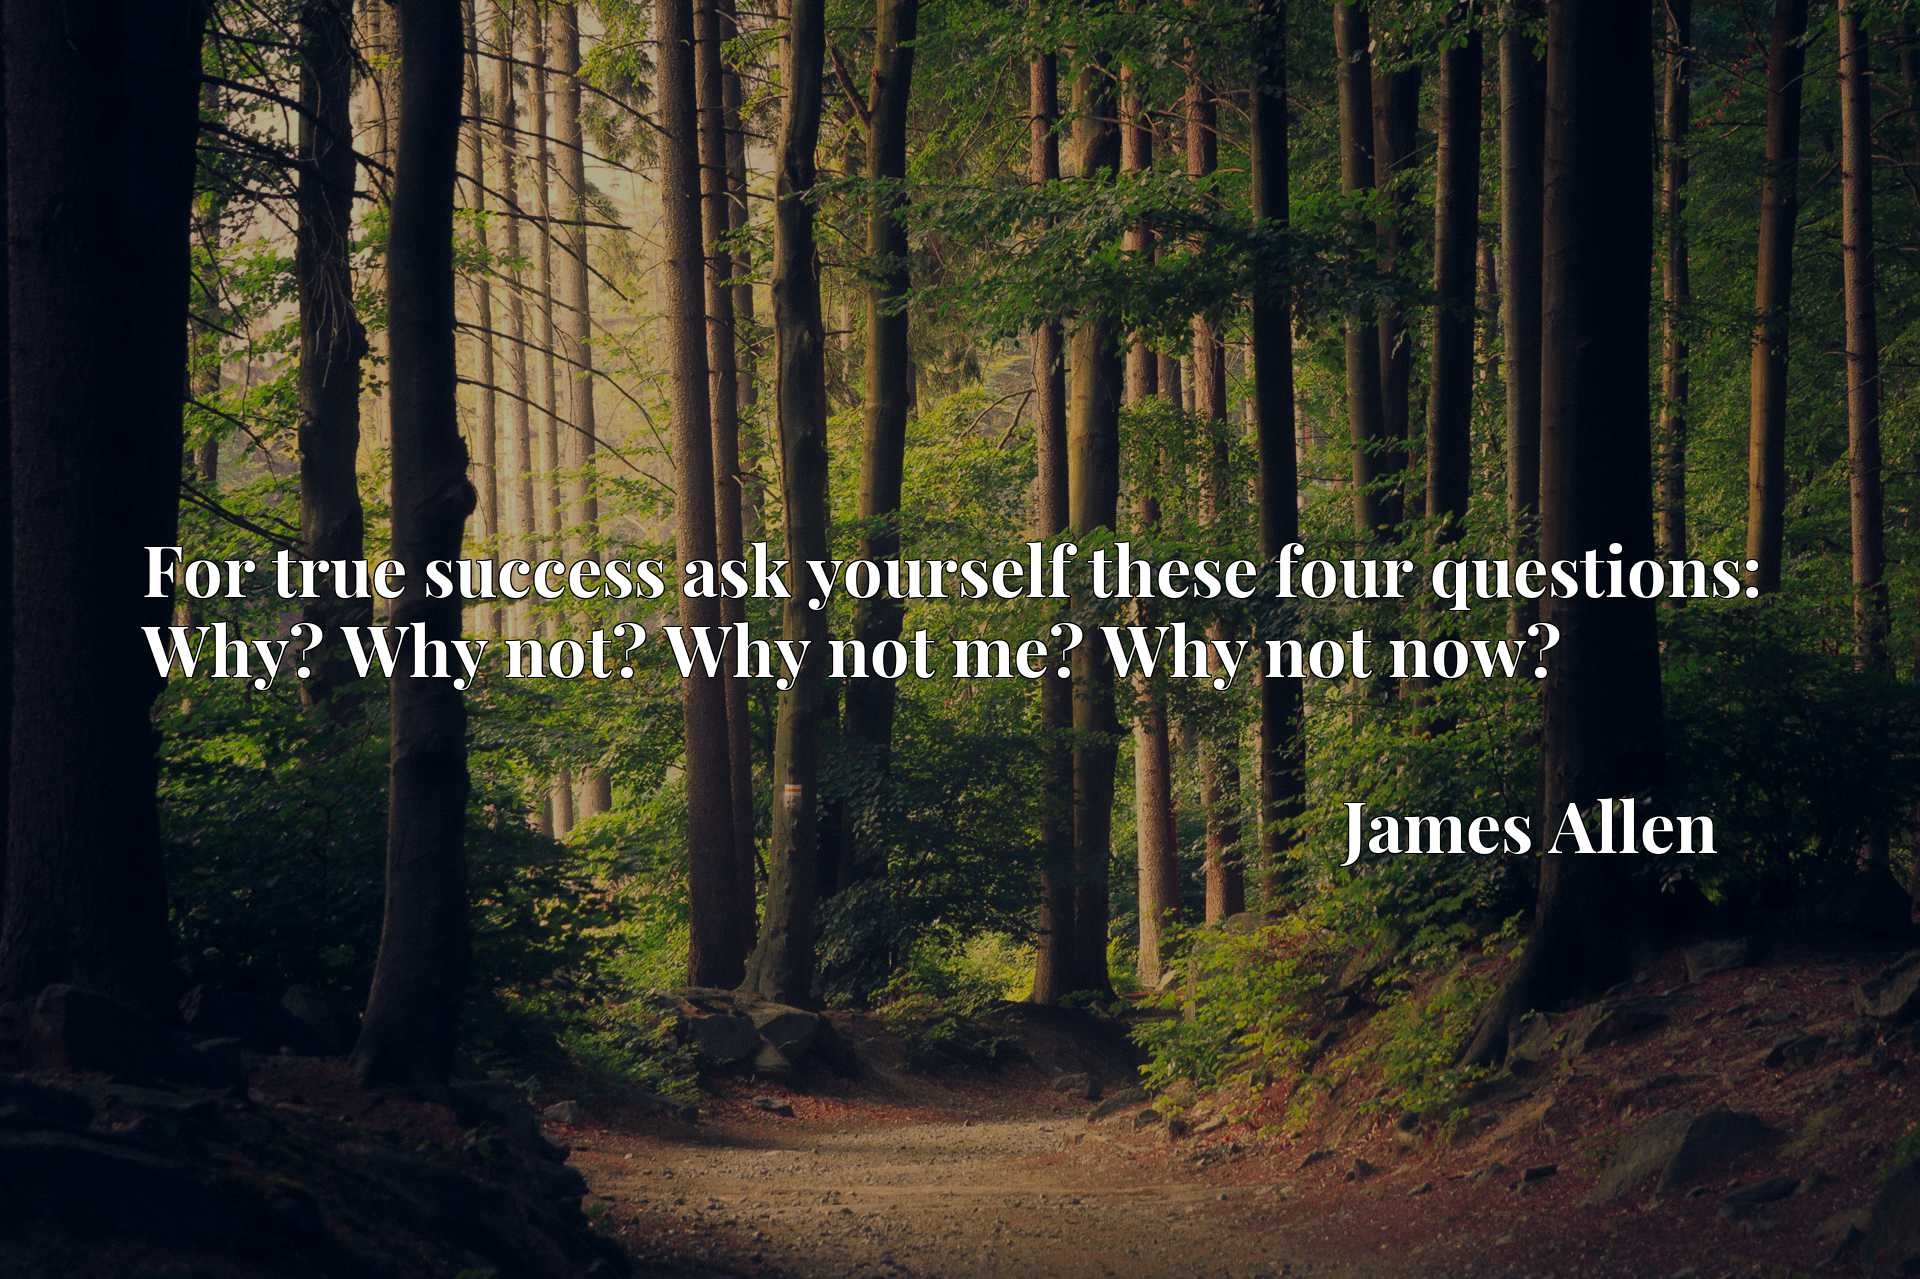 For true success ask yourself these four questions: Why? Why not? Why not me? Why not now?